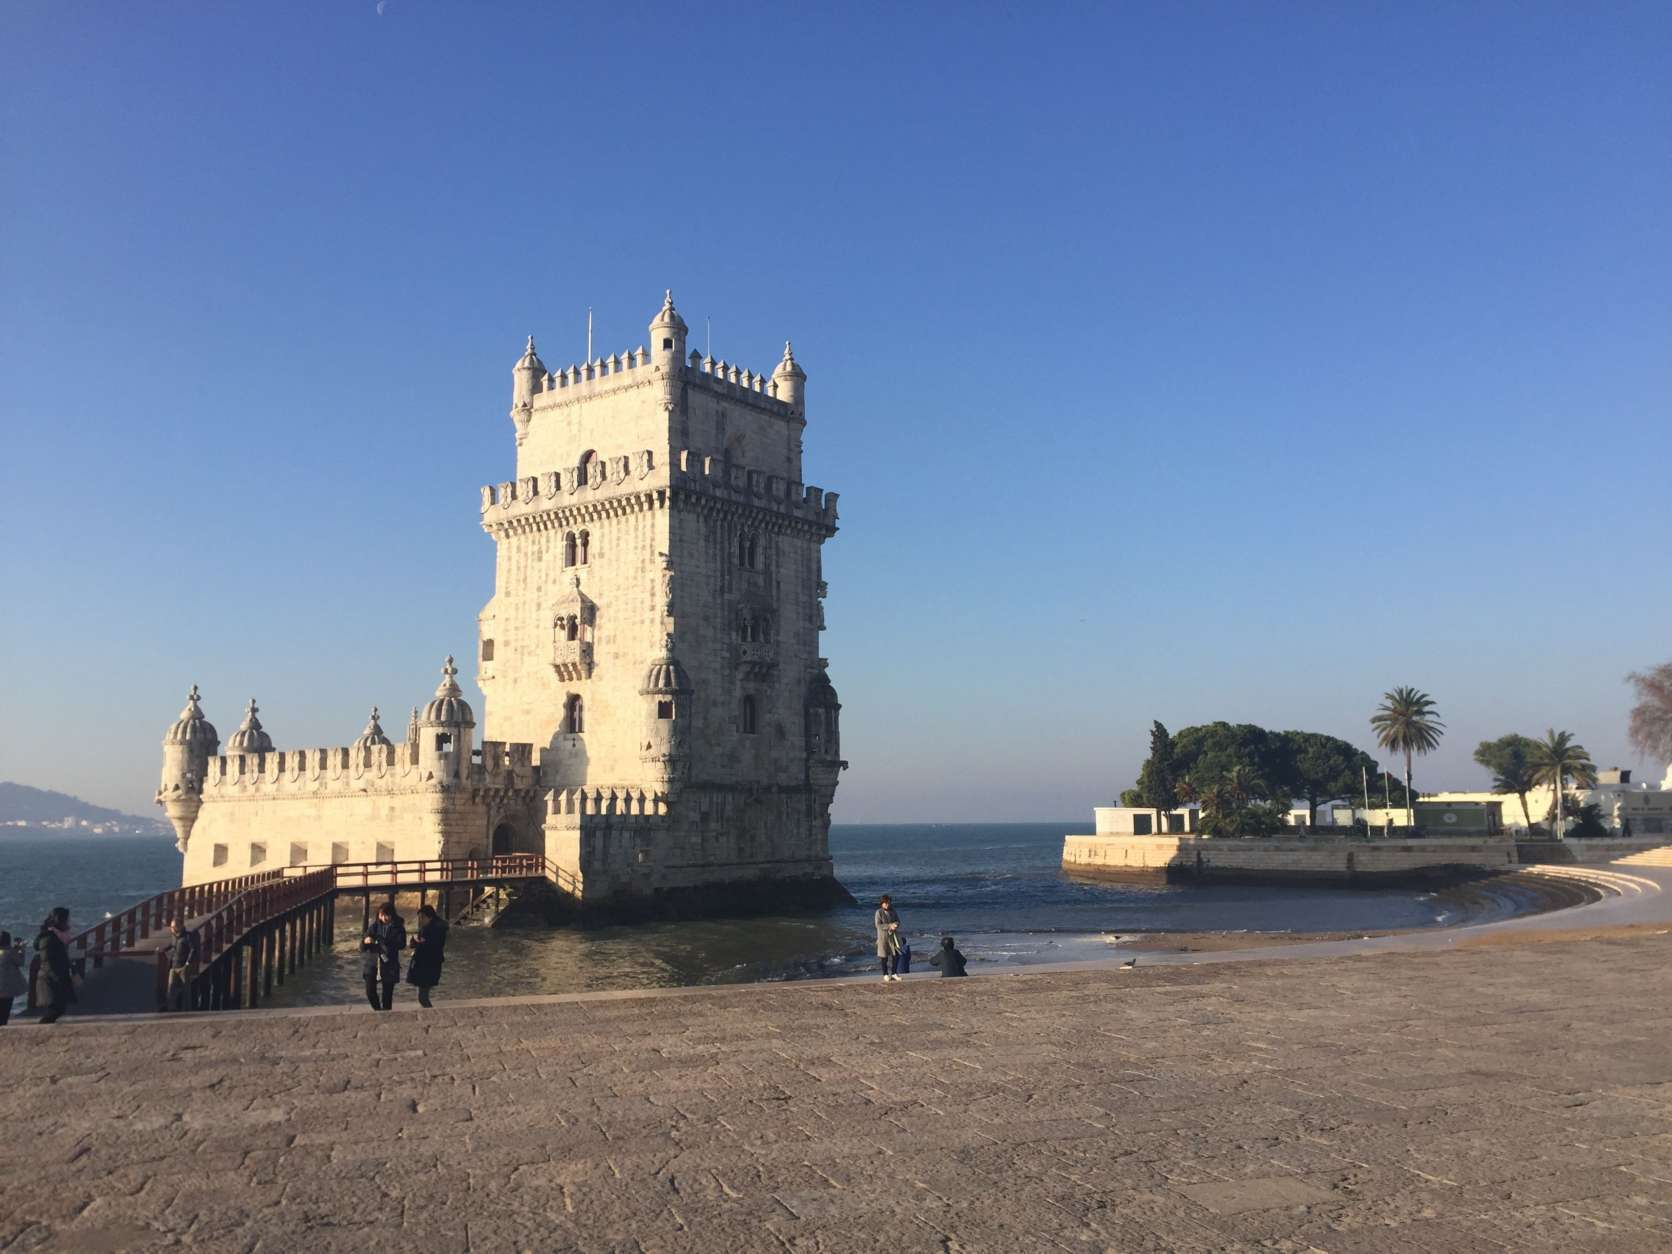 This Jan. 20, 2017 photo shows the Tower of Belem on the banks of the Tagus River in Lisbon, Portugal. The picturesque fortress is a UNESCO World Heritage site and one of Lisbon's most famous landmarks. It dates to the 16th century when Portuguese explorers sailed the globe, establishing a colonial empire that stretched from Asia to Africa to South America. (AP Photo/Beth J. Harpaz)